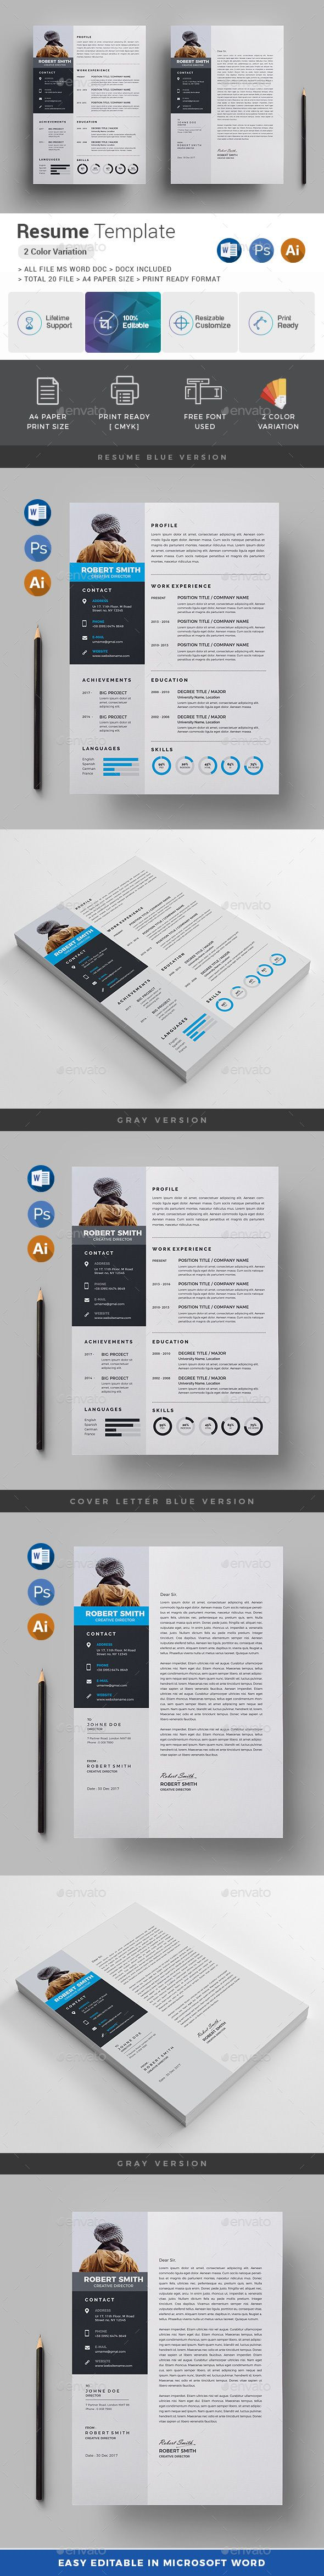 Resume Features Of Resume Template Color Versions A4 Paper Size With